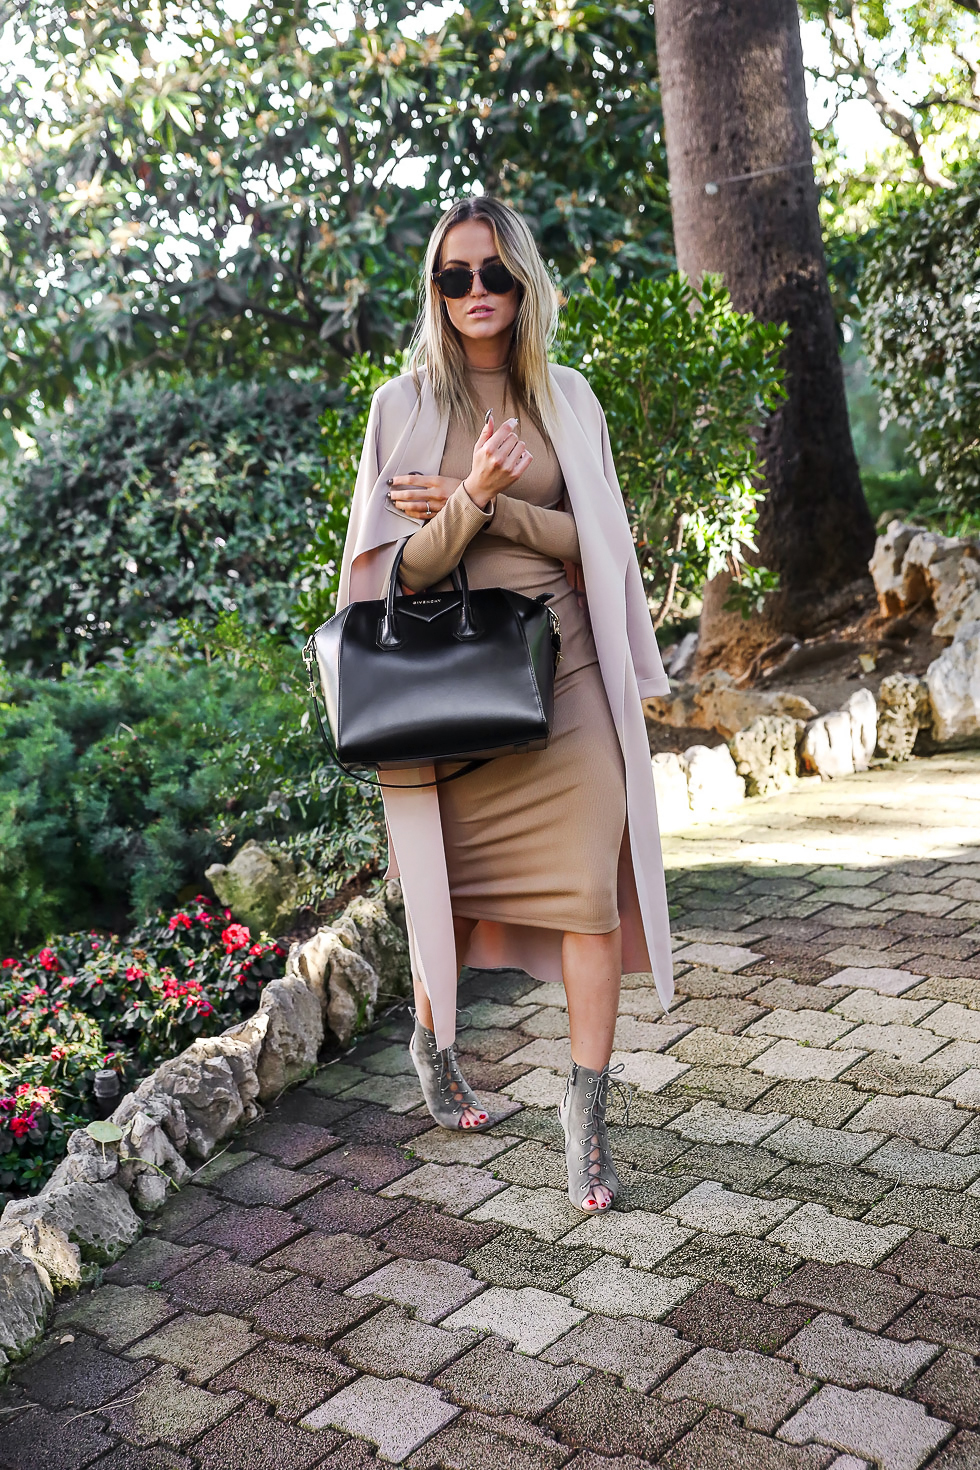 The nude trend never goes out of fashion. Kristin Sundberg wears a classic bodycon midi dress with open toe sandals and a matching overcoat. Try the look with nude tights in the coming winter months. Dress: Missy Empire, Jacket: Morena Fash, Shoes: Lamoda, Bag: Givenchy.